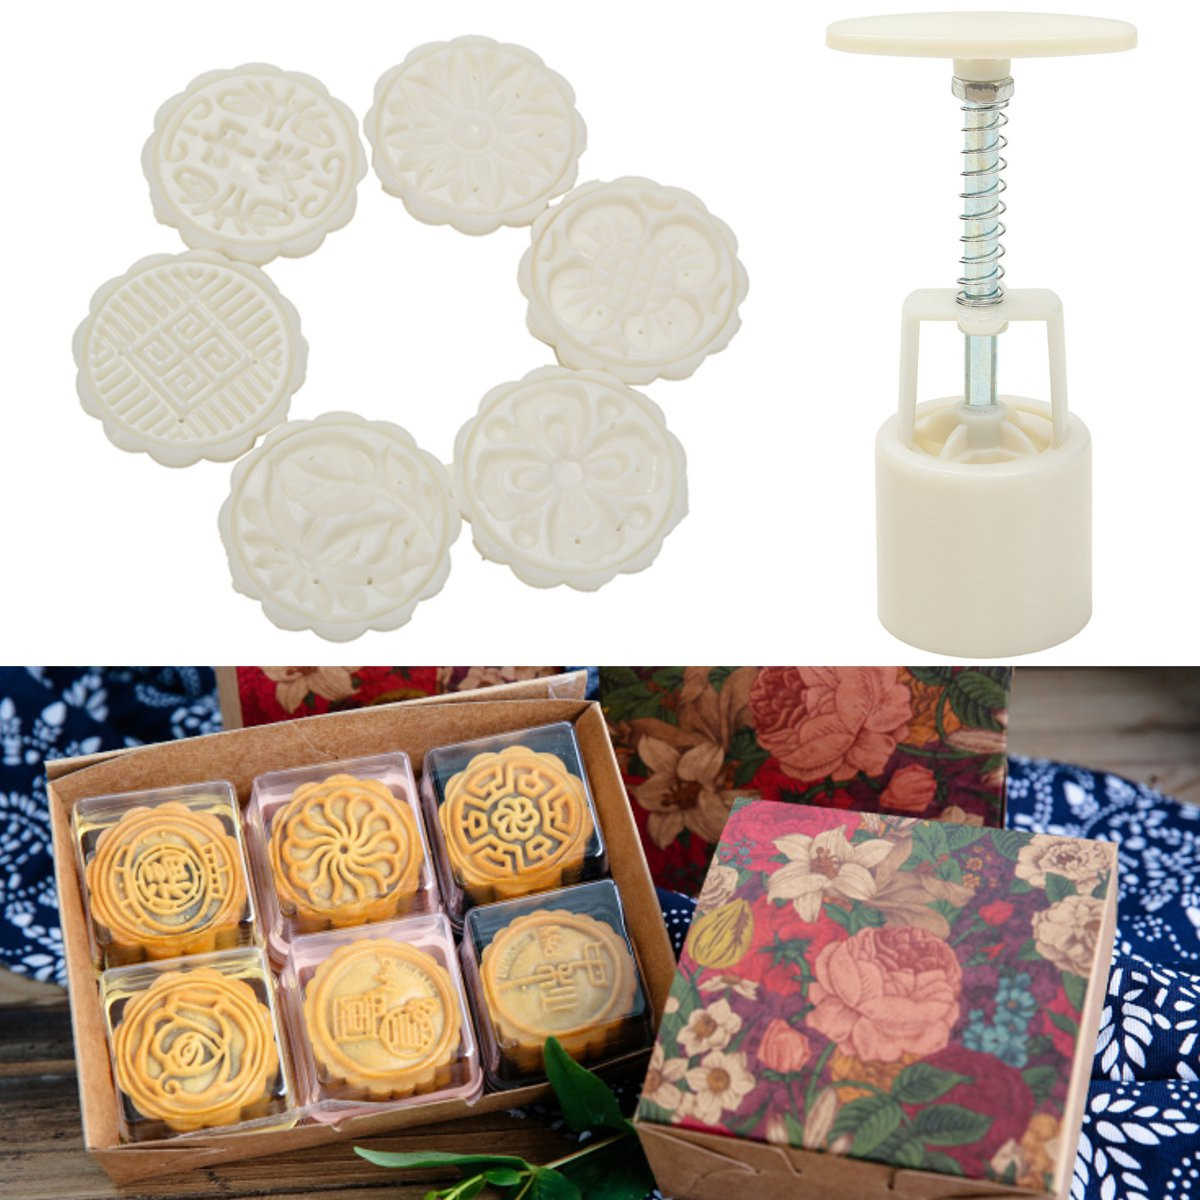 Meigar Hand Press Moon Cake Cookie Mold Mould Mid-autumn Festival DIY Flower Decoration 6 Stamps 50g Tool DIY Decoration by